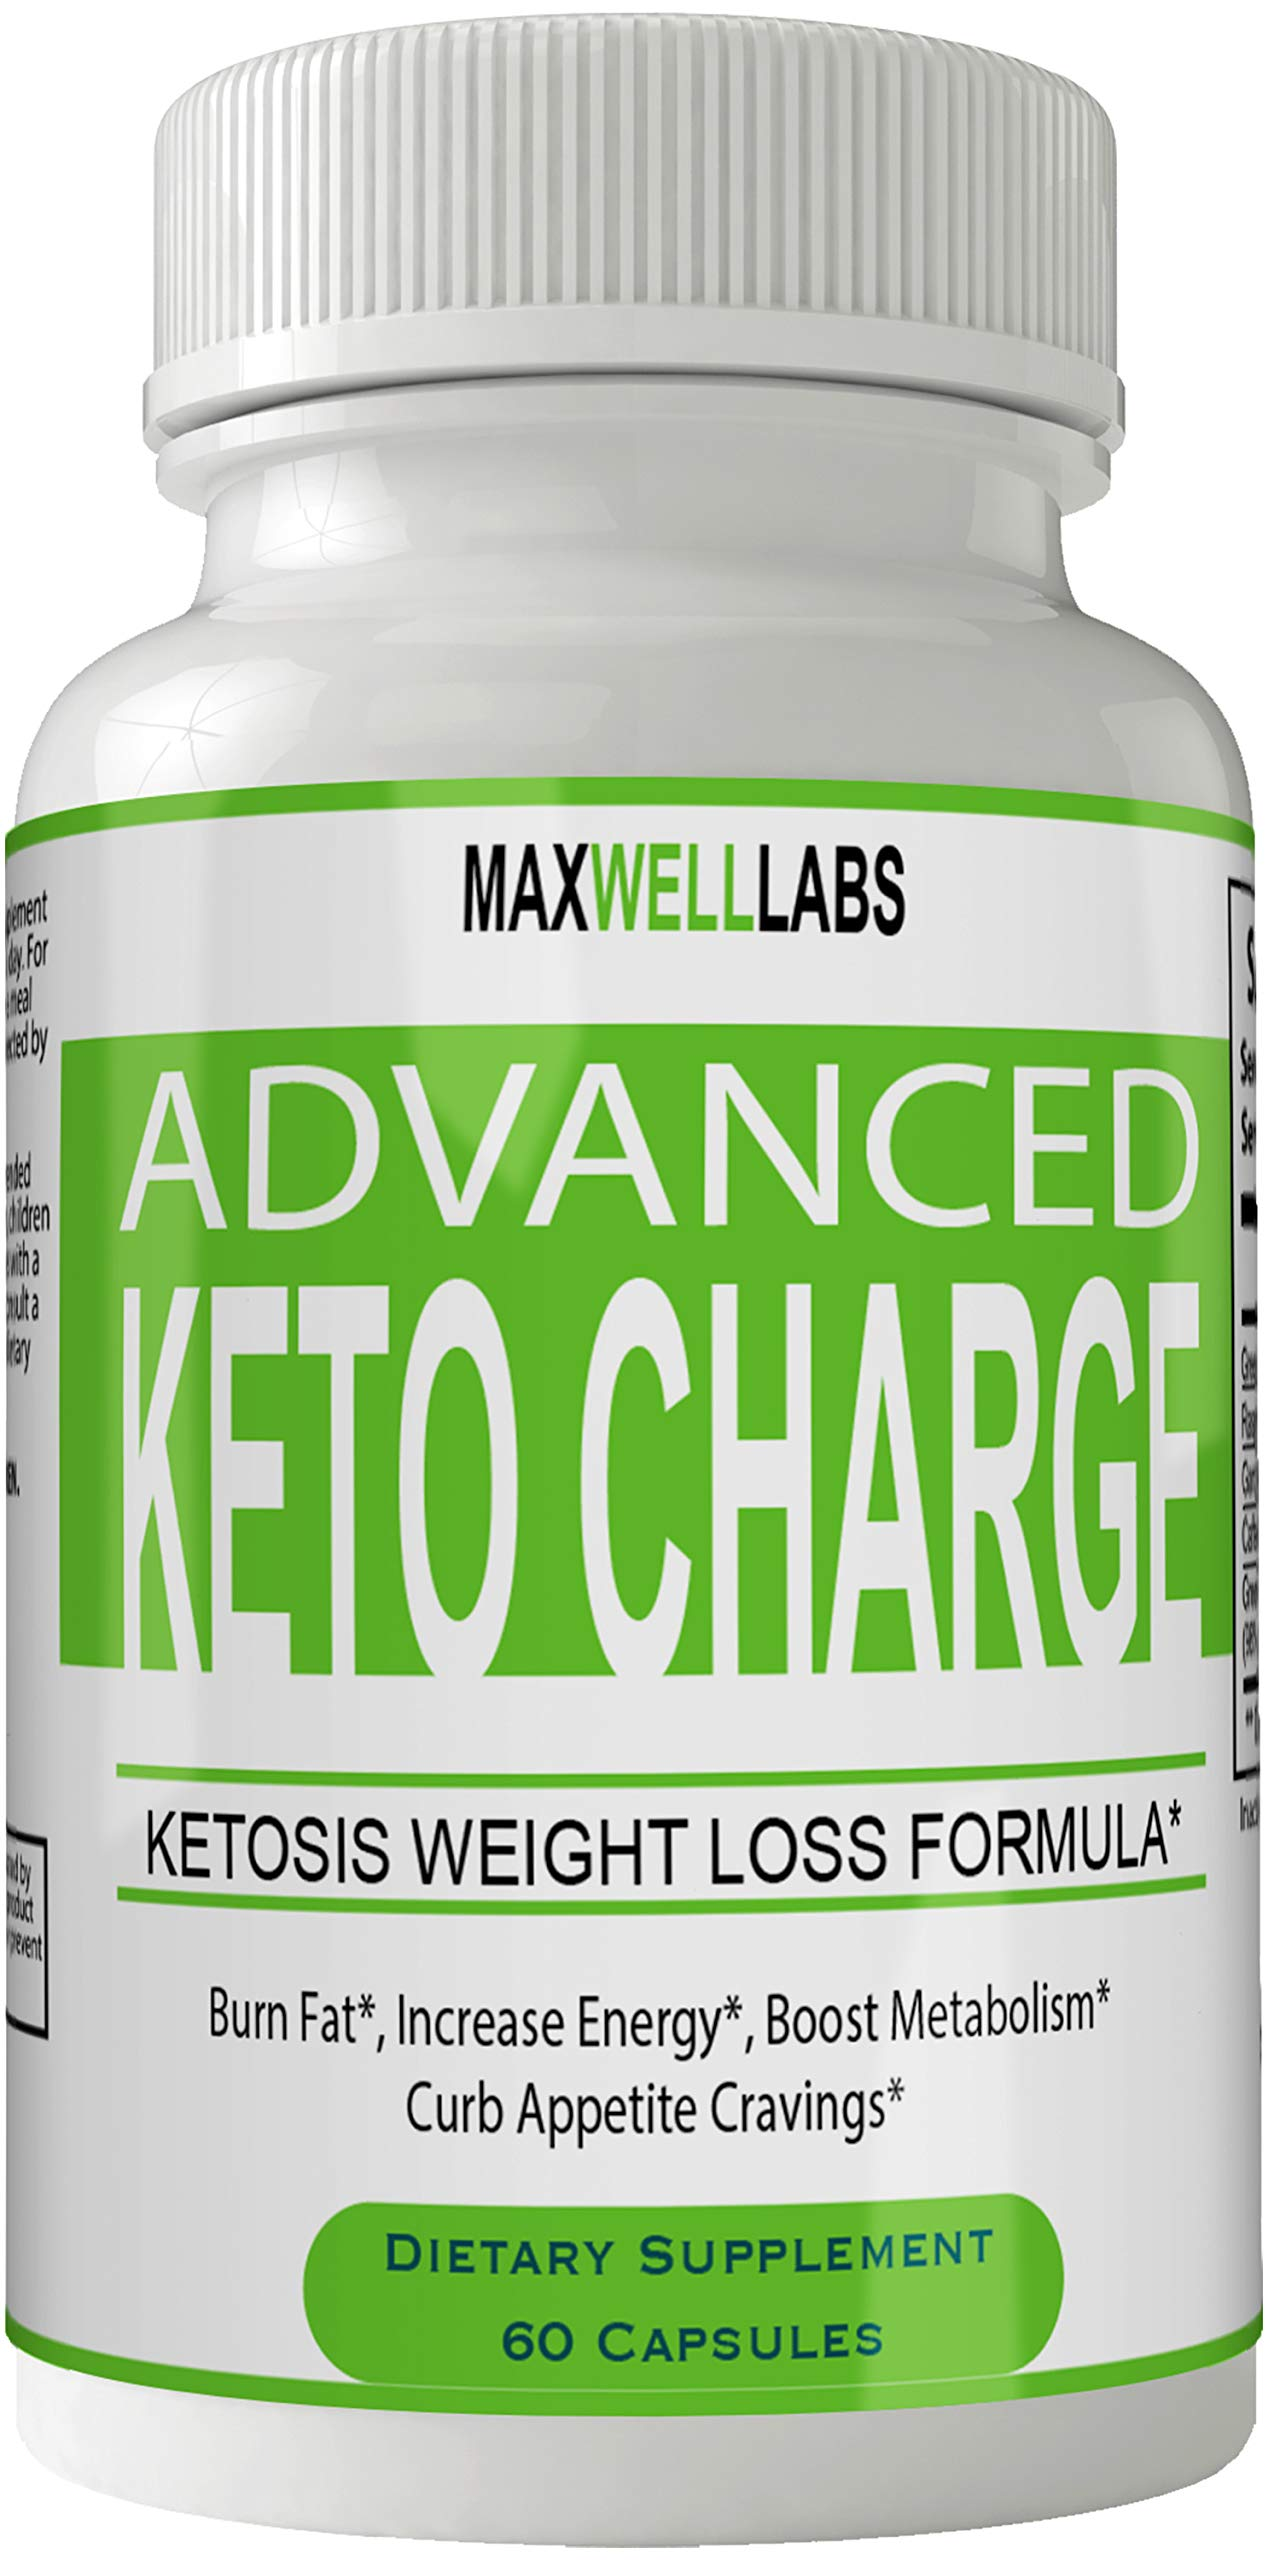 Keto Charge Advanced Weight Loss Plus Pills Keto Diet Capsules, Advanced Thermal Ketogenic Weight Loss Formula by nutra4health LLC